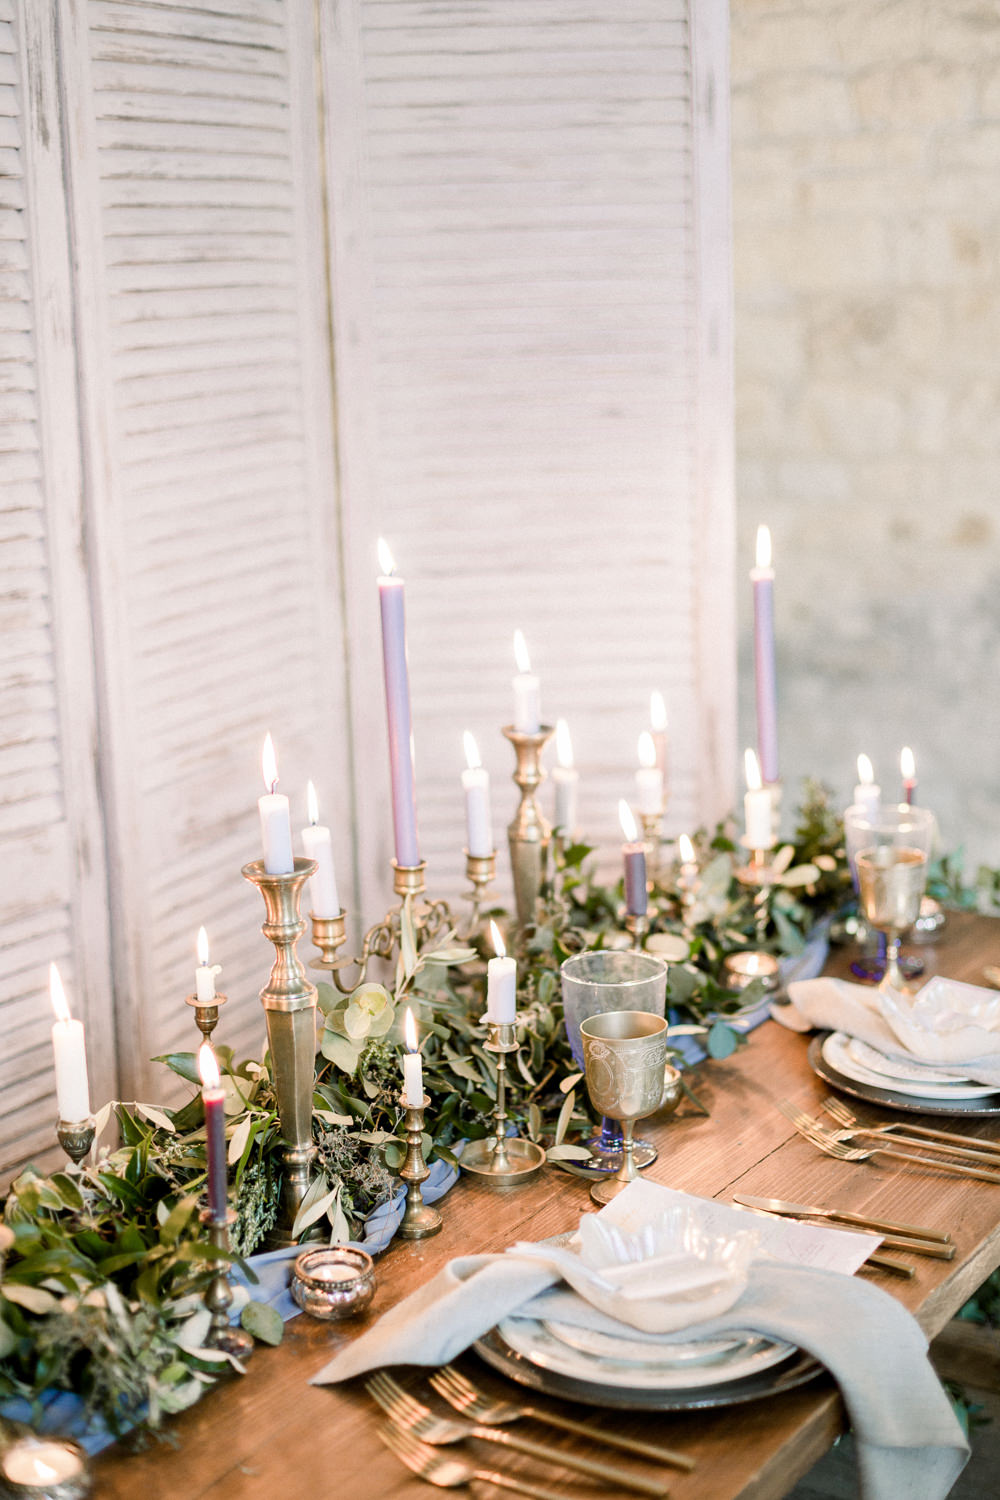 Candle Sticks Table Decor Tablescape Greenery Foliage Winter Blue Barn Wedding Ideas Joanna Briggs Photography